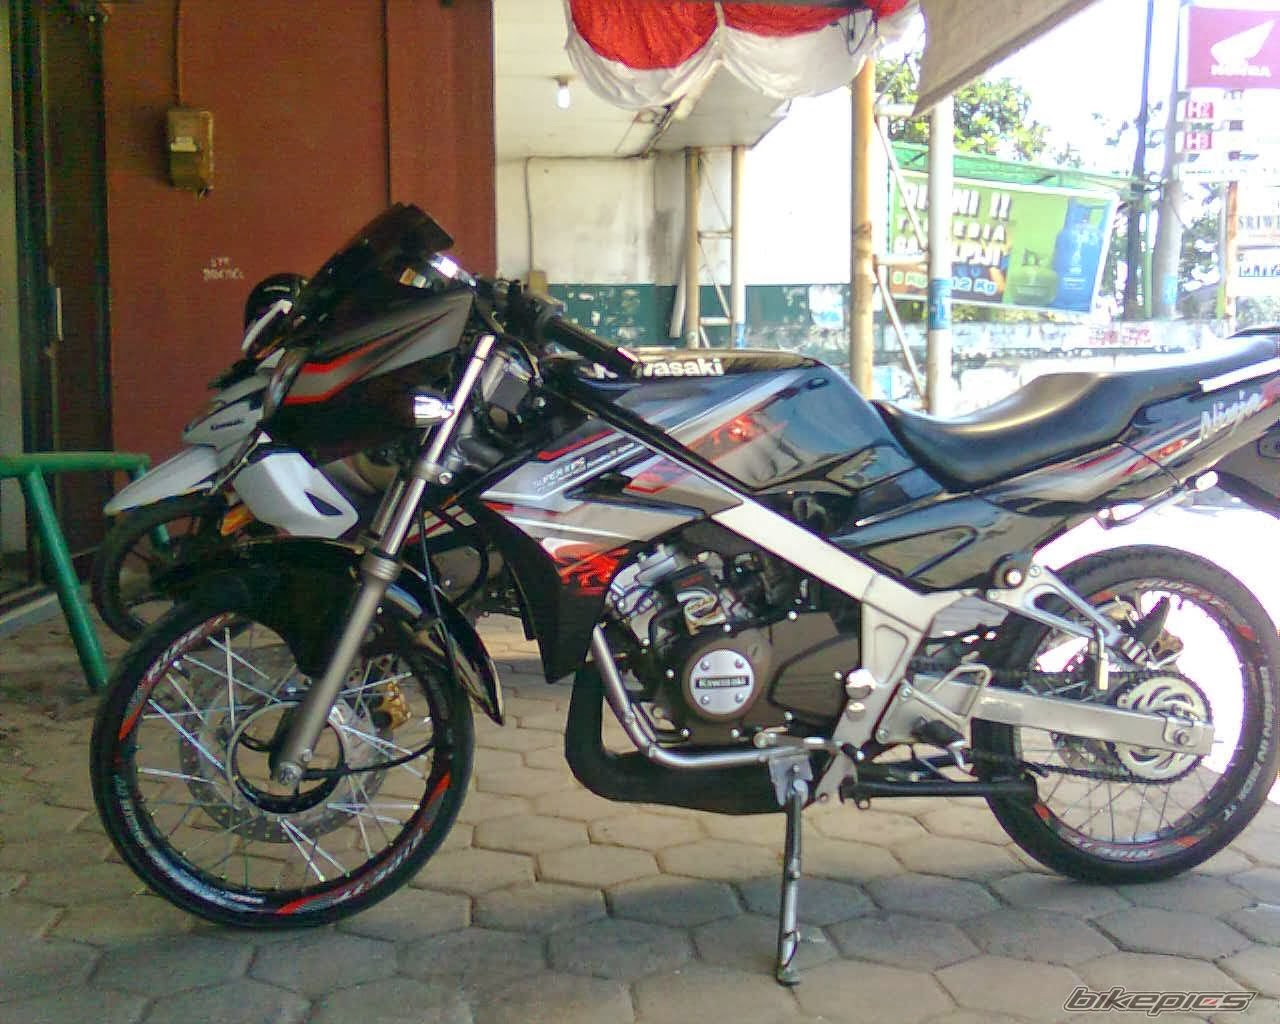 2012 Yamaha Mio Injeksi Specs And Reviews Gambar